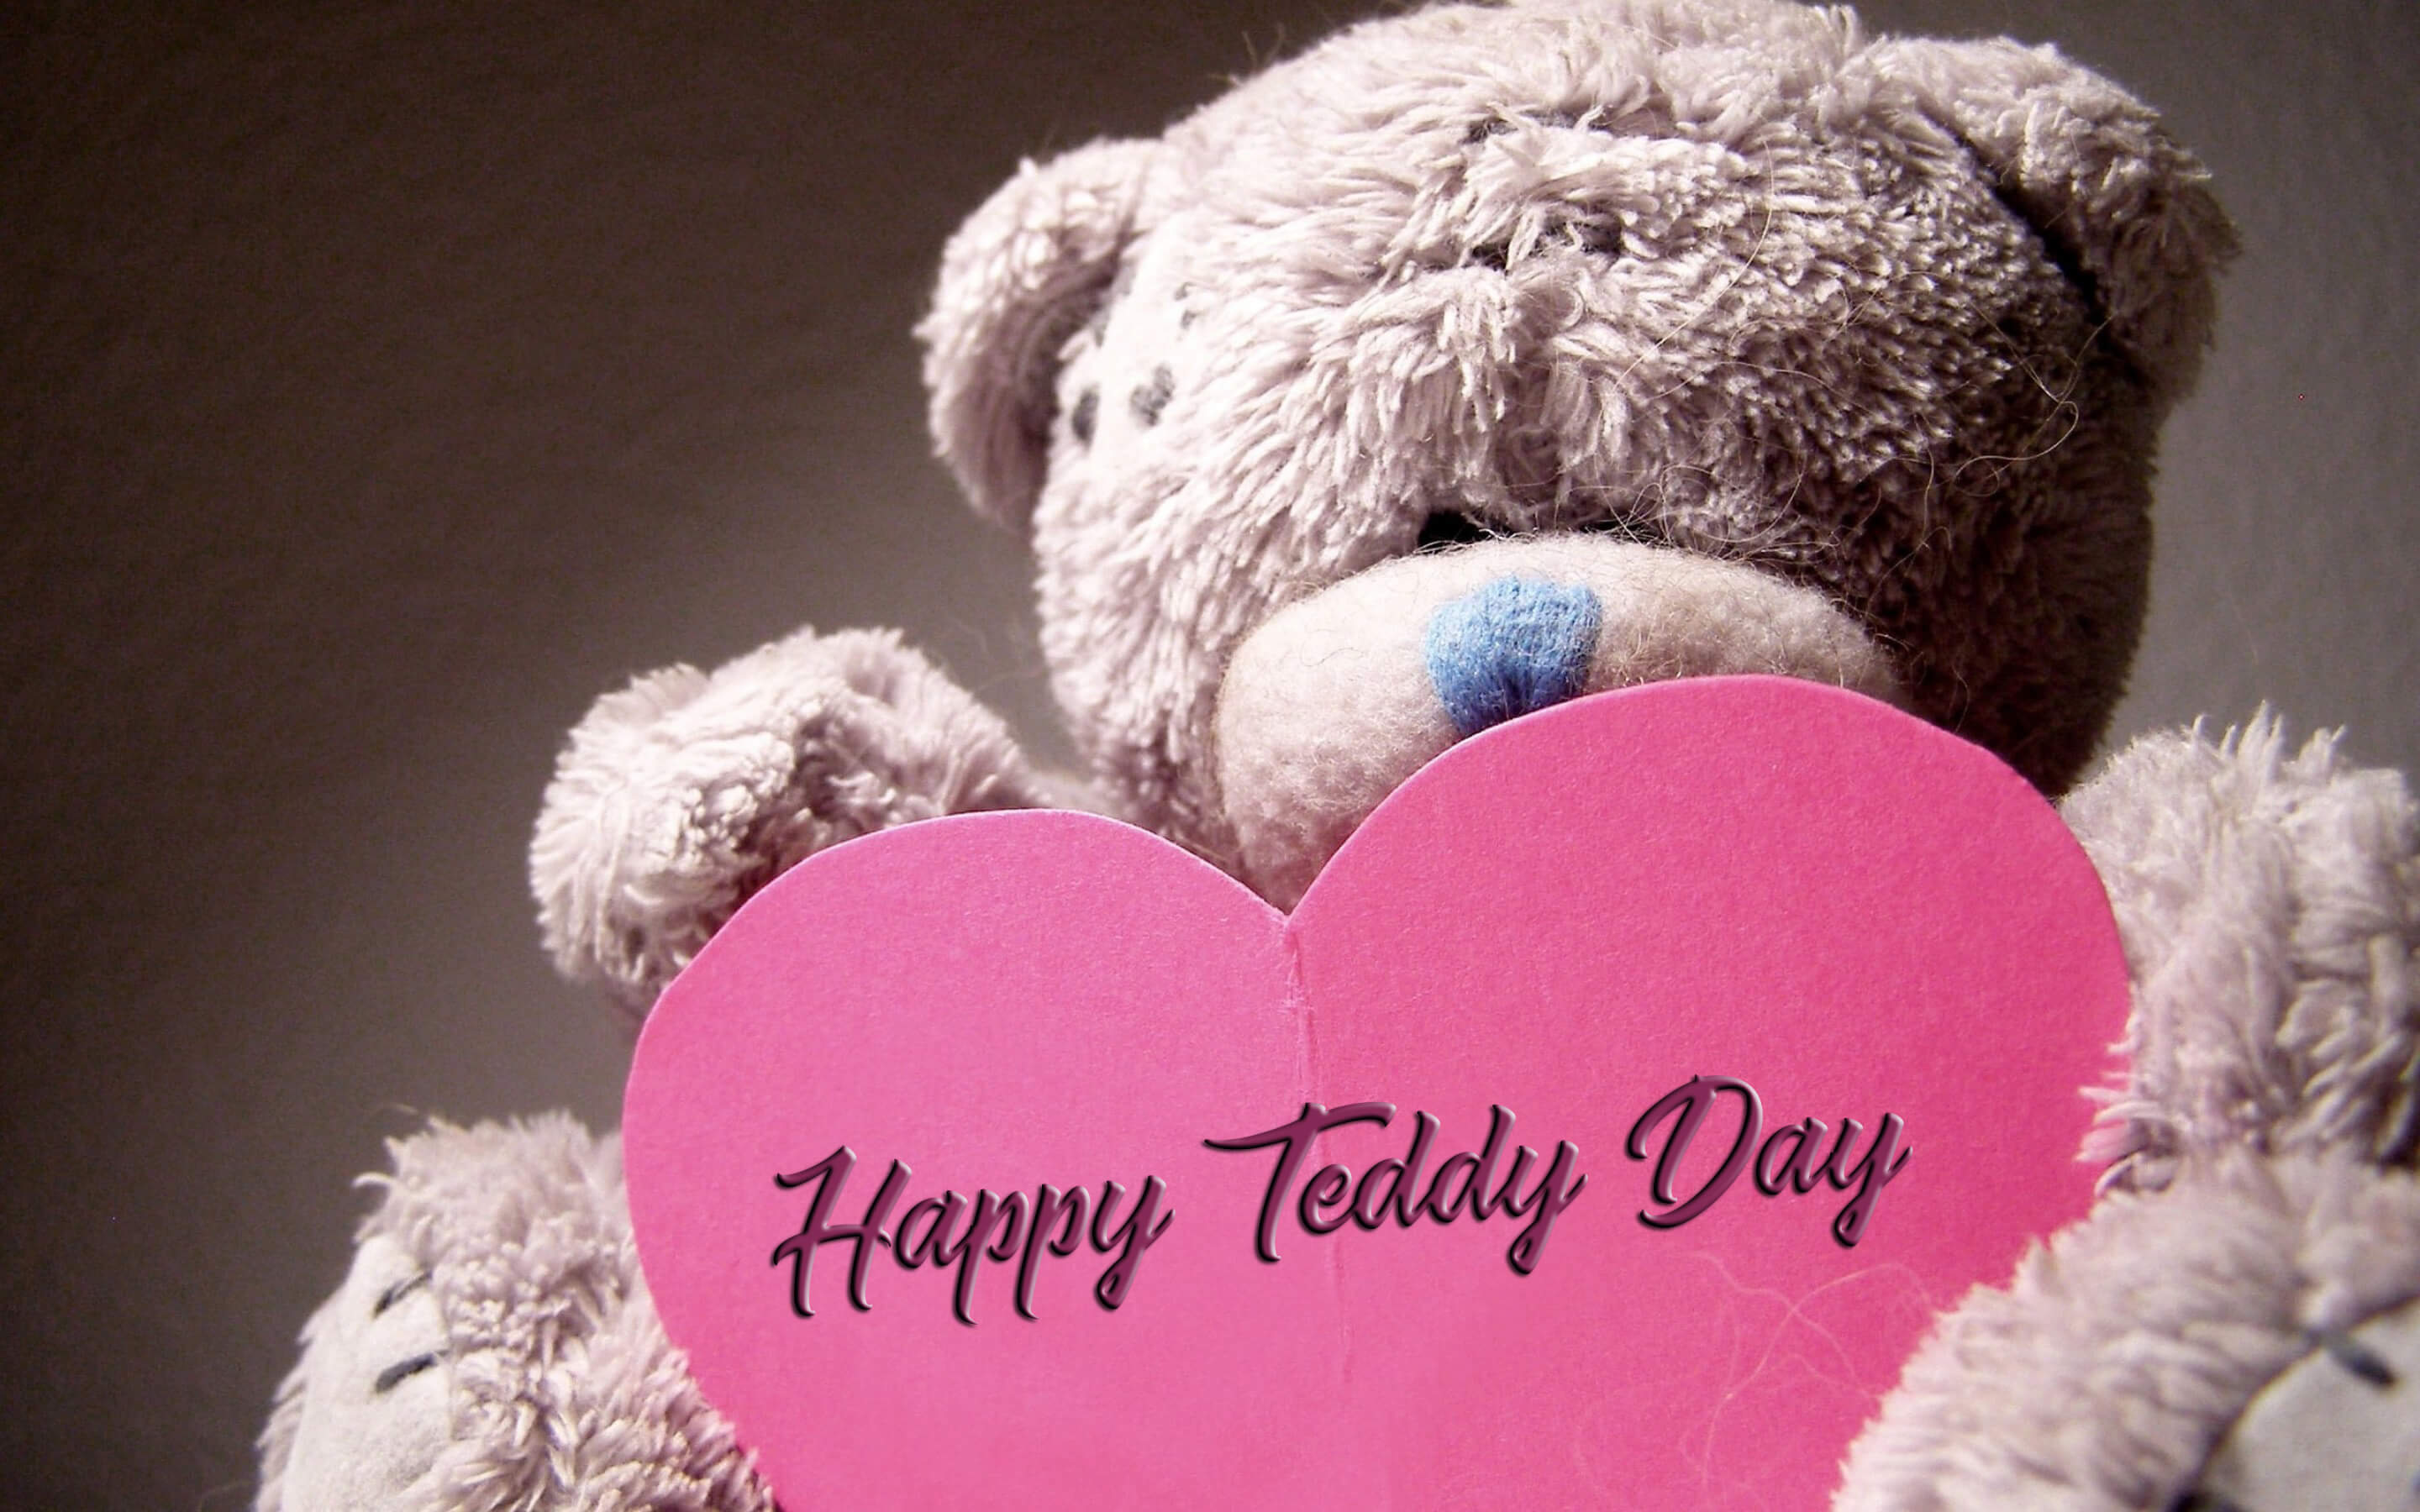 happy teddy day wishes bear large image facebook desktop hd wallpaper